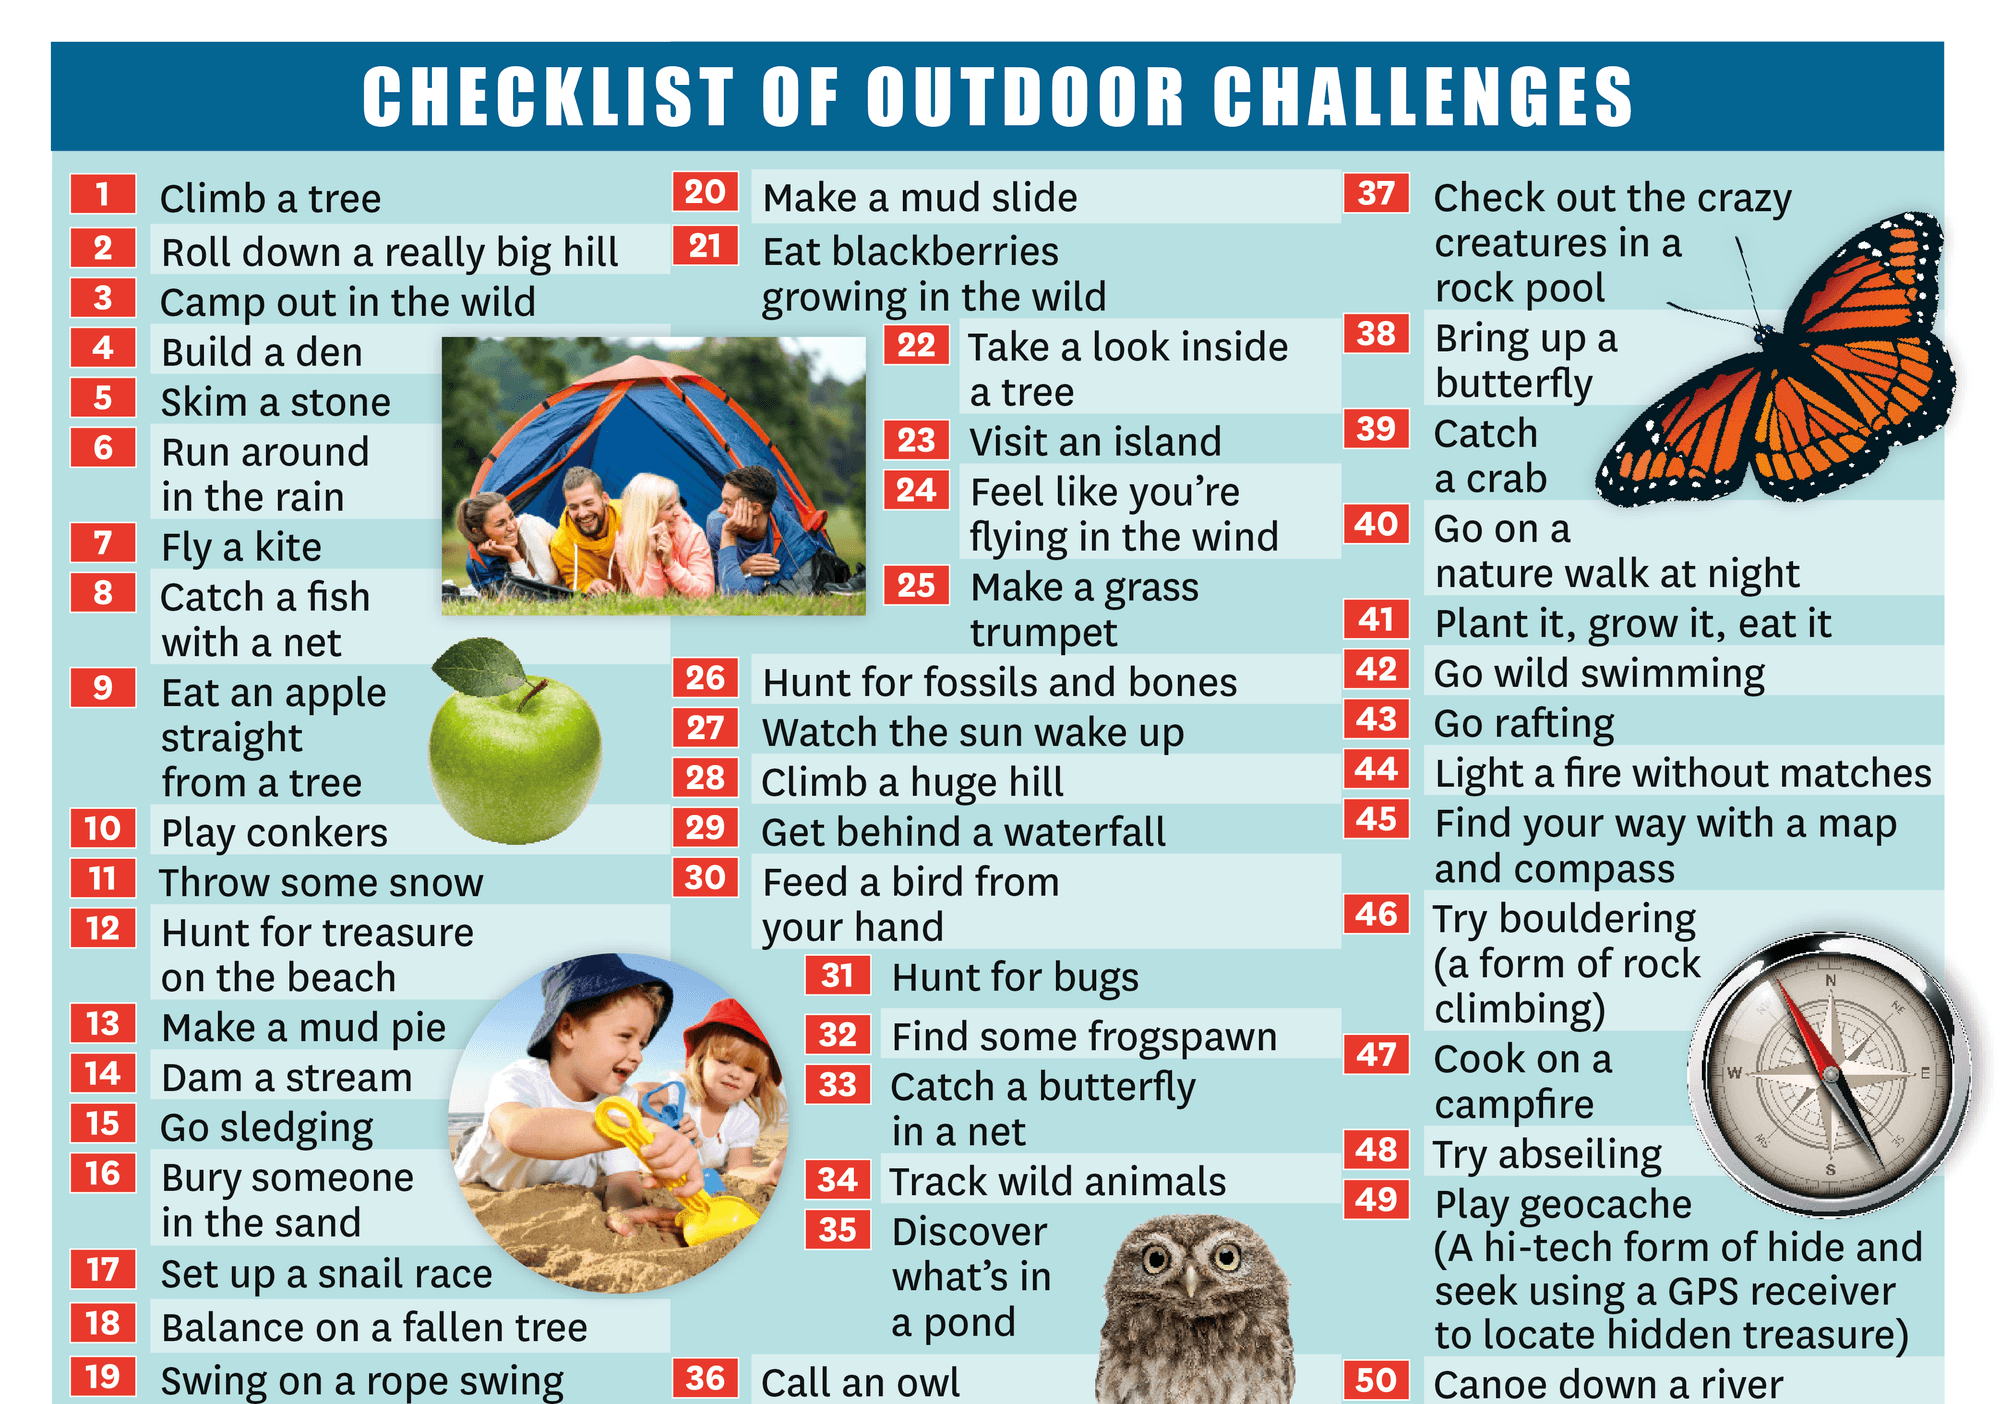 Checklist of outdoor challenges